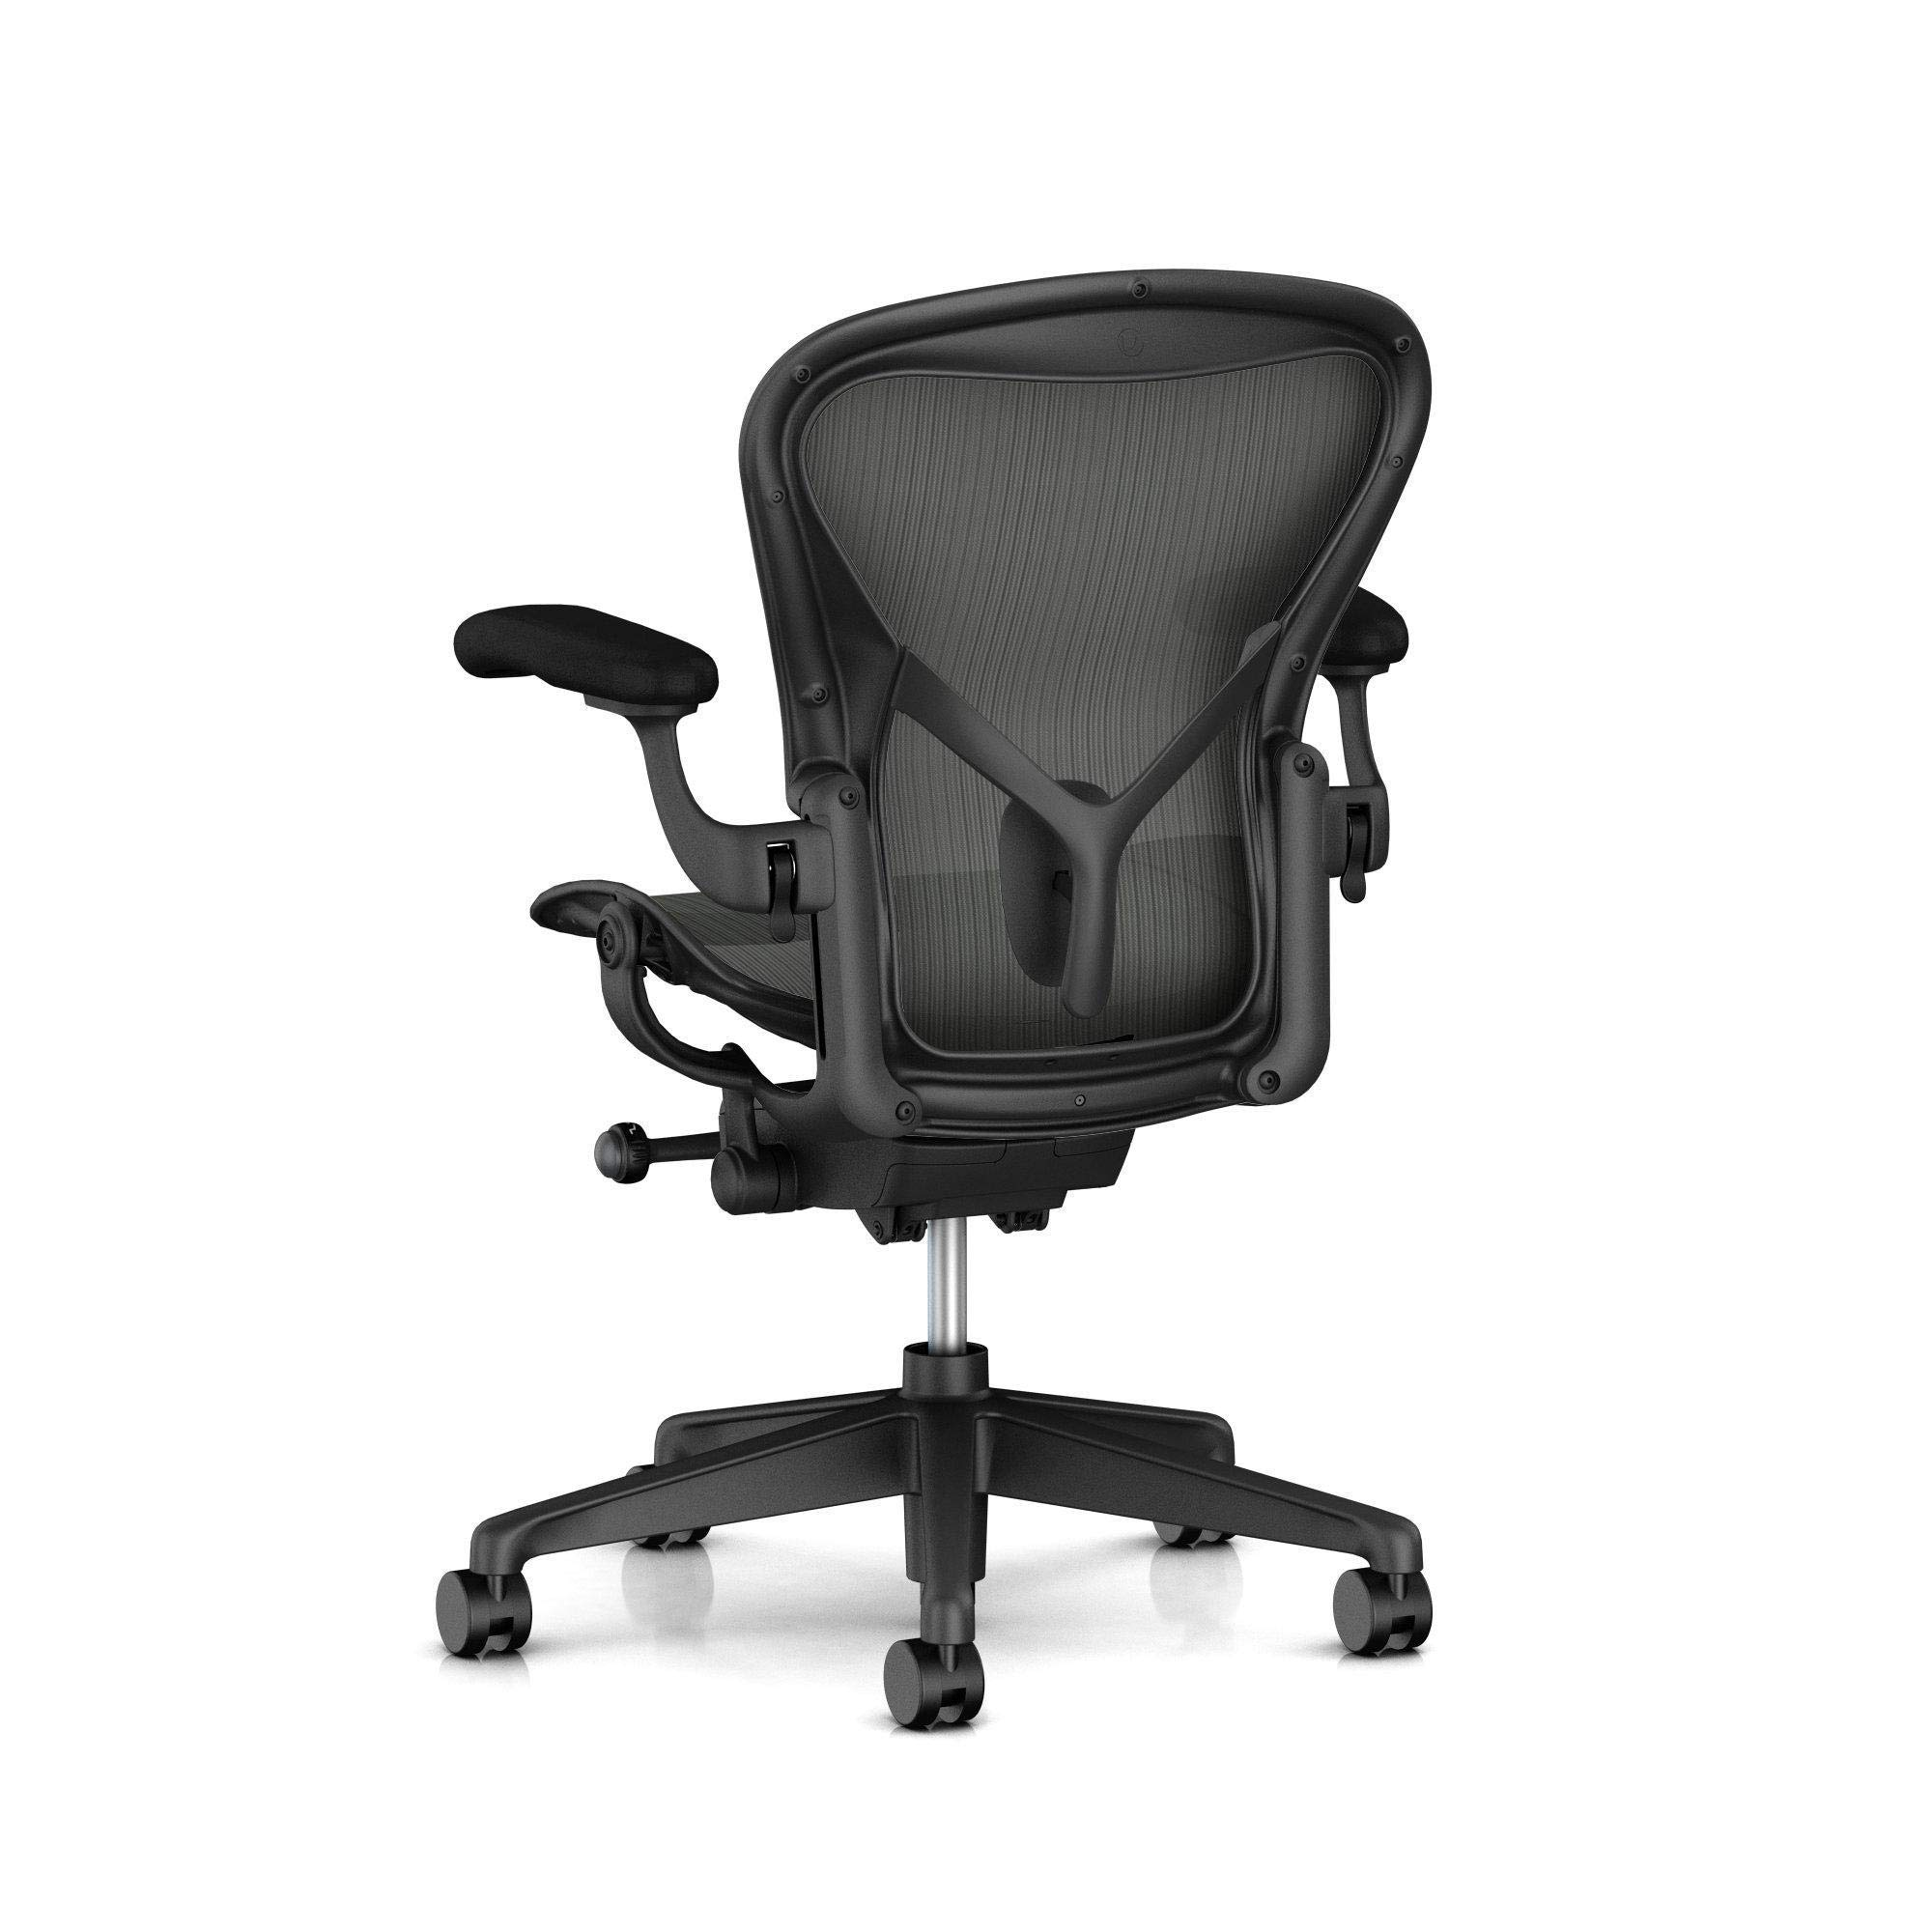 Herman Miller Aeron Remastered Chair Size B: Buy Online at Best